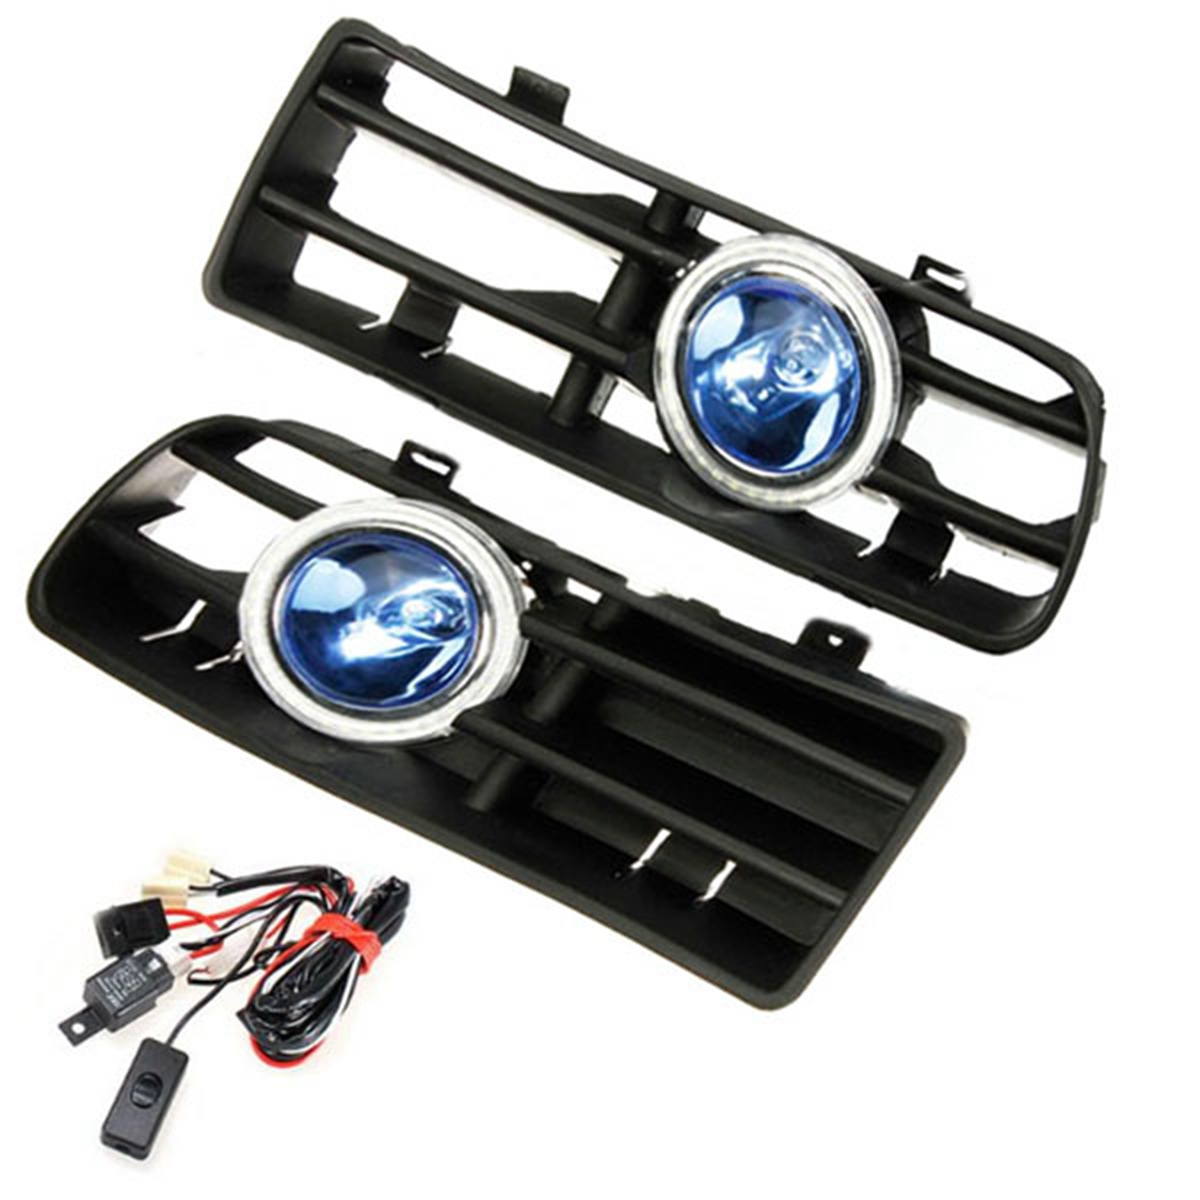 hight resolution of 12v led bumper grille fog light daytime running lamp driving running drl foglight turn signal indicator white angel eye wiring harness on off switch for